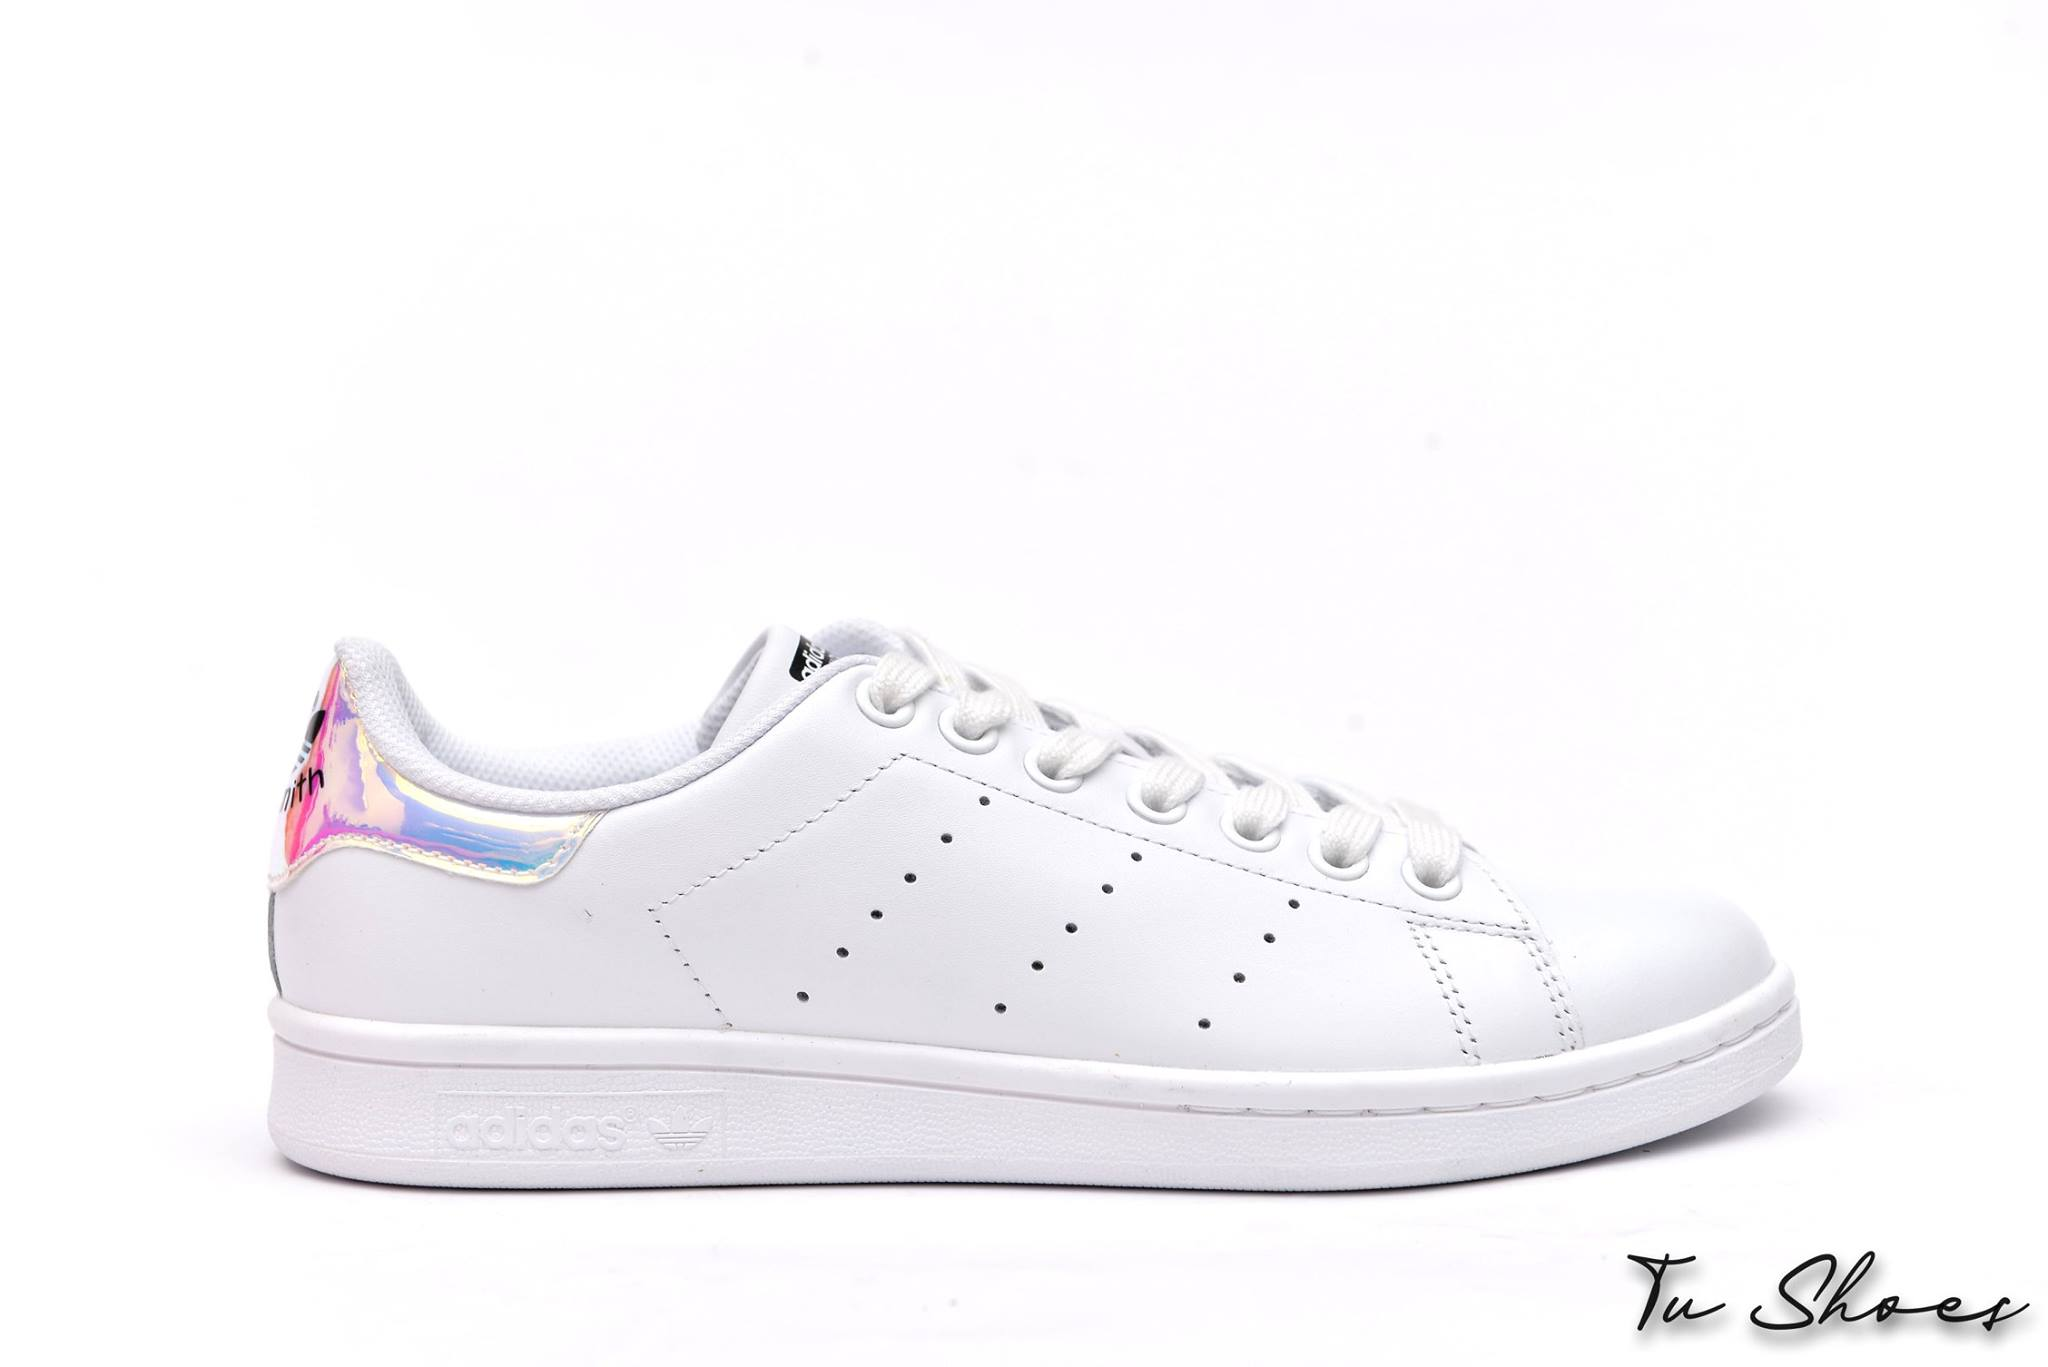 Stan Smith Hologram - Rep 1:1